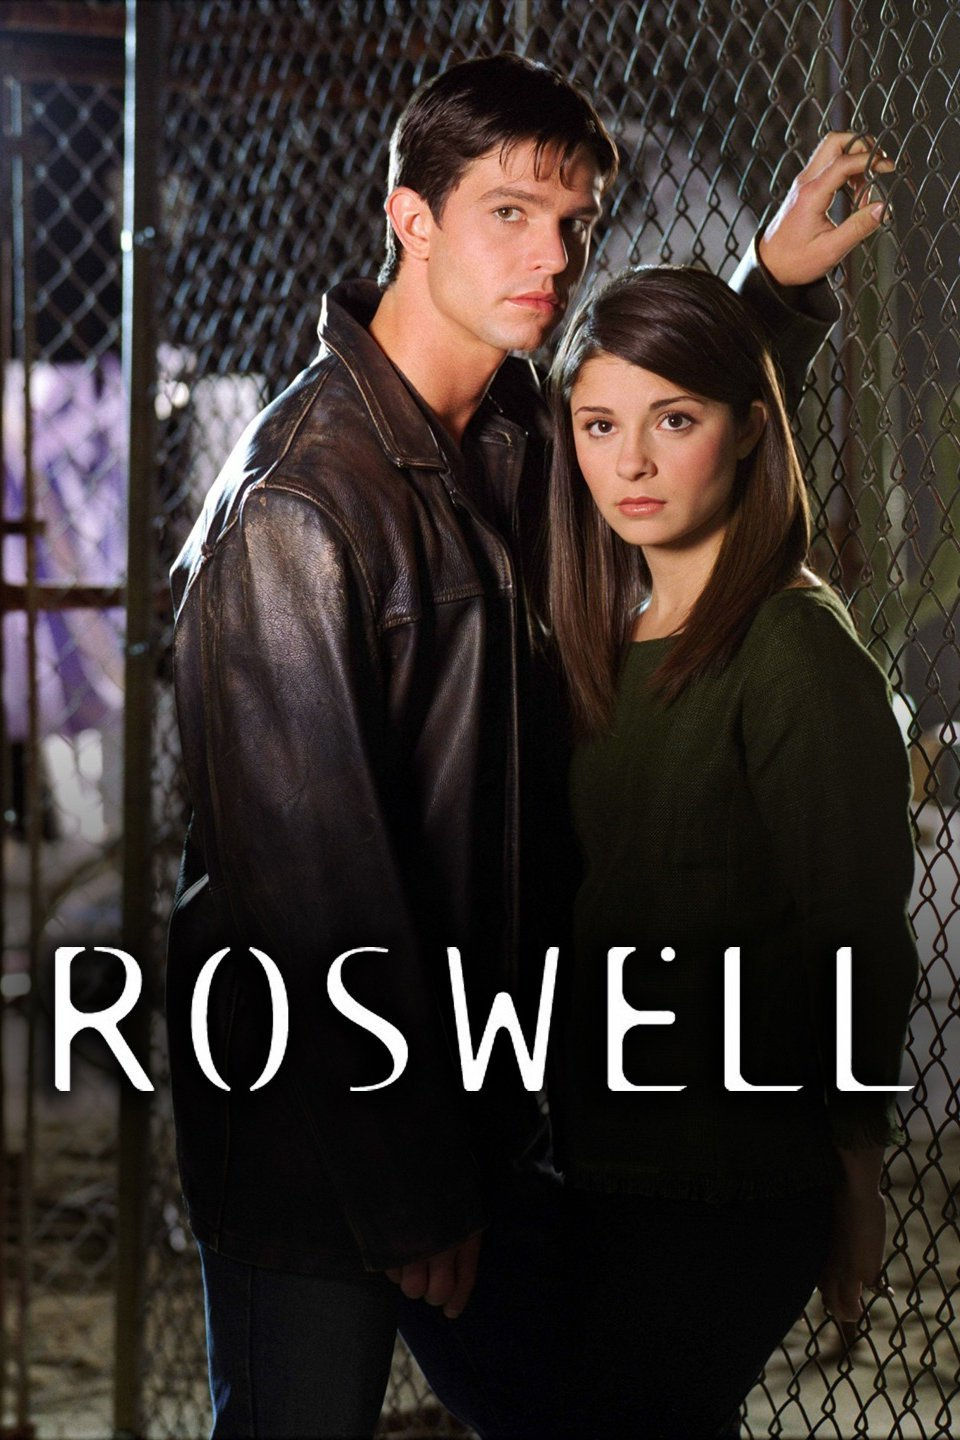 Roswell-Roswell 1